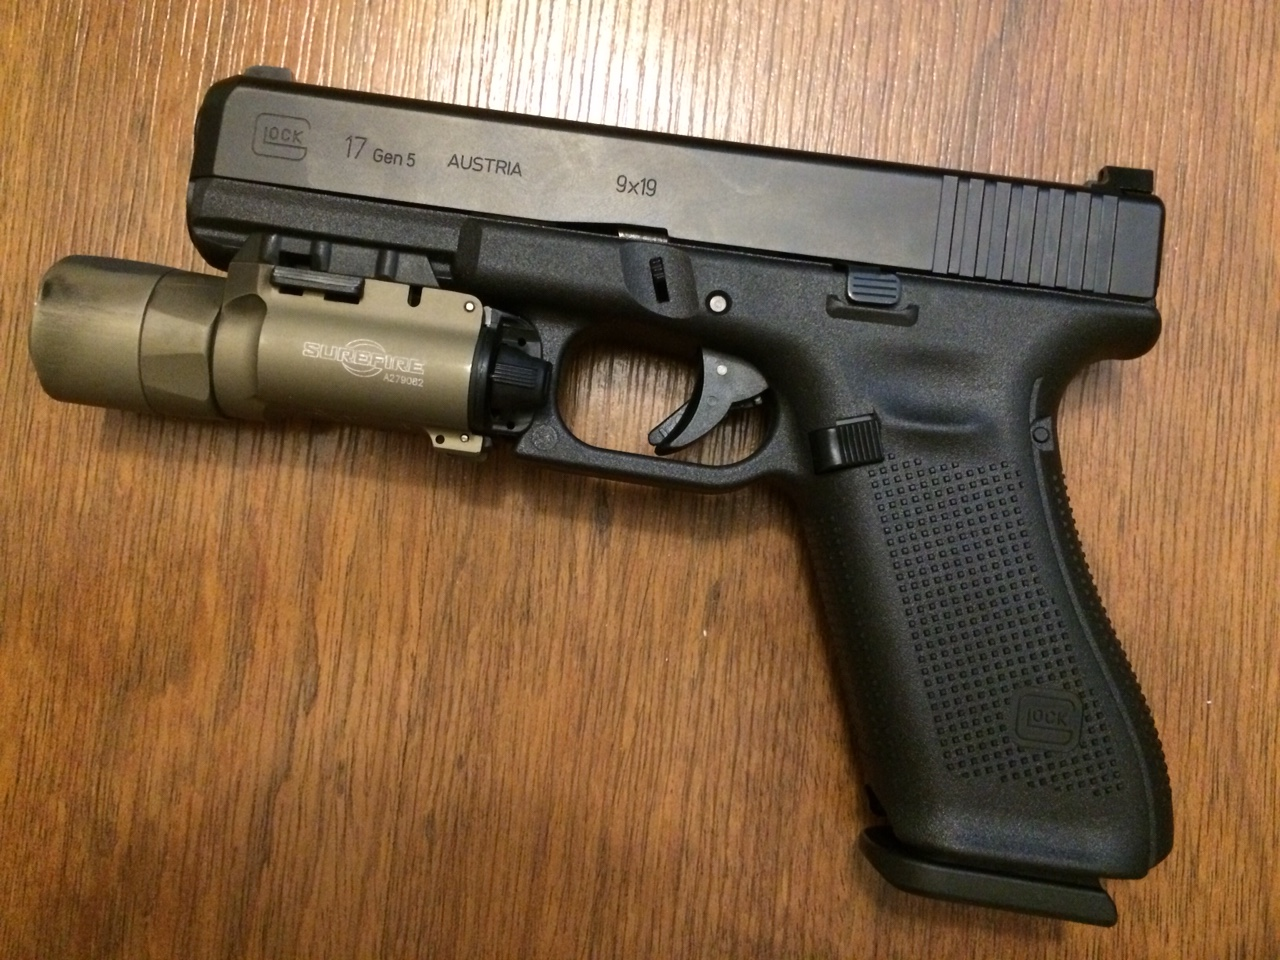 19x vs 17gen5 i picked the 17 the leading glock forum and